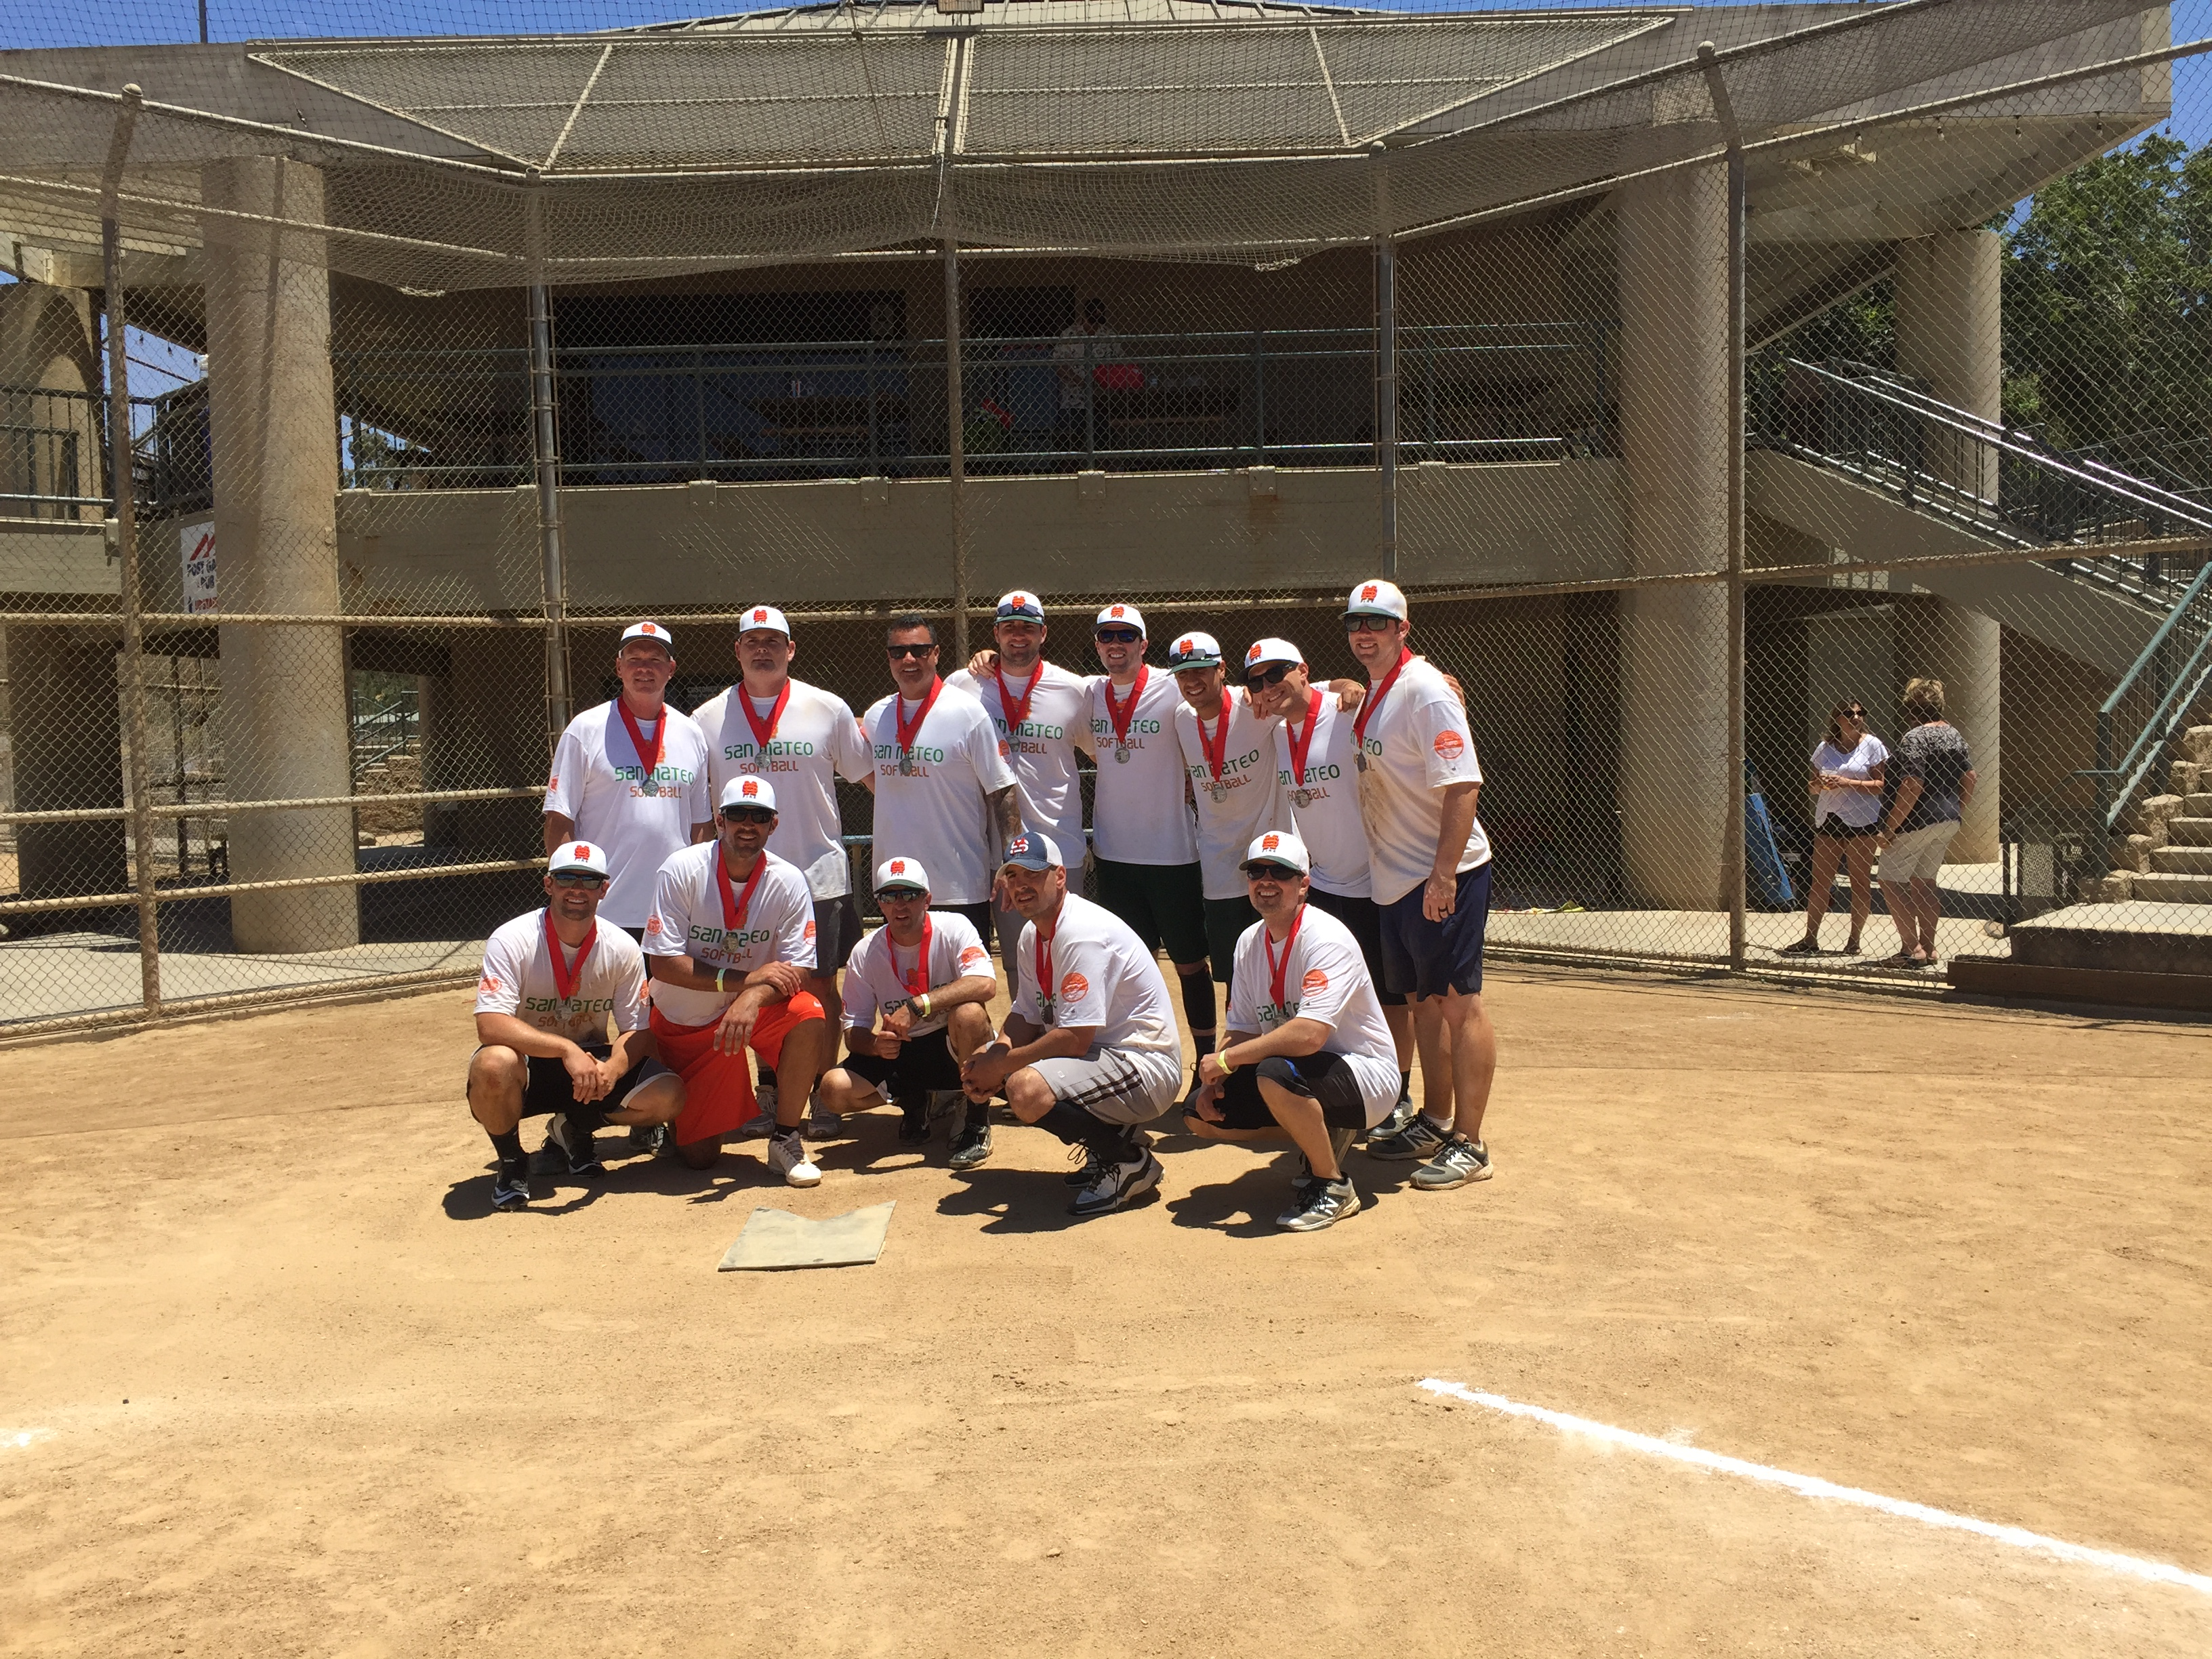 2017 Firefighter Olympics Softball Silver Medal Winners